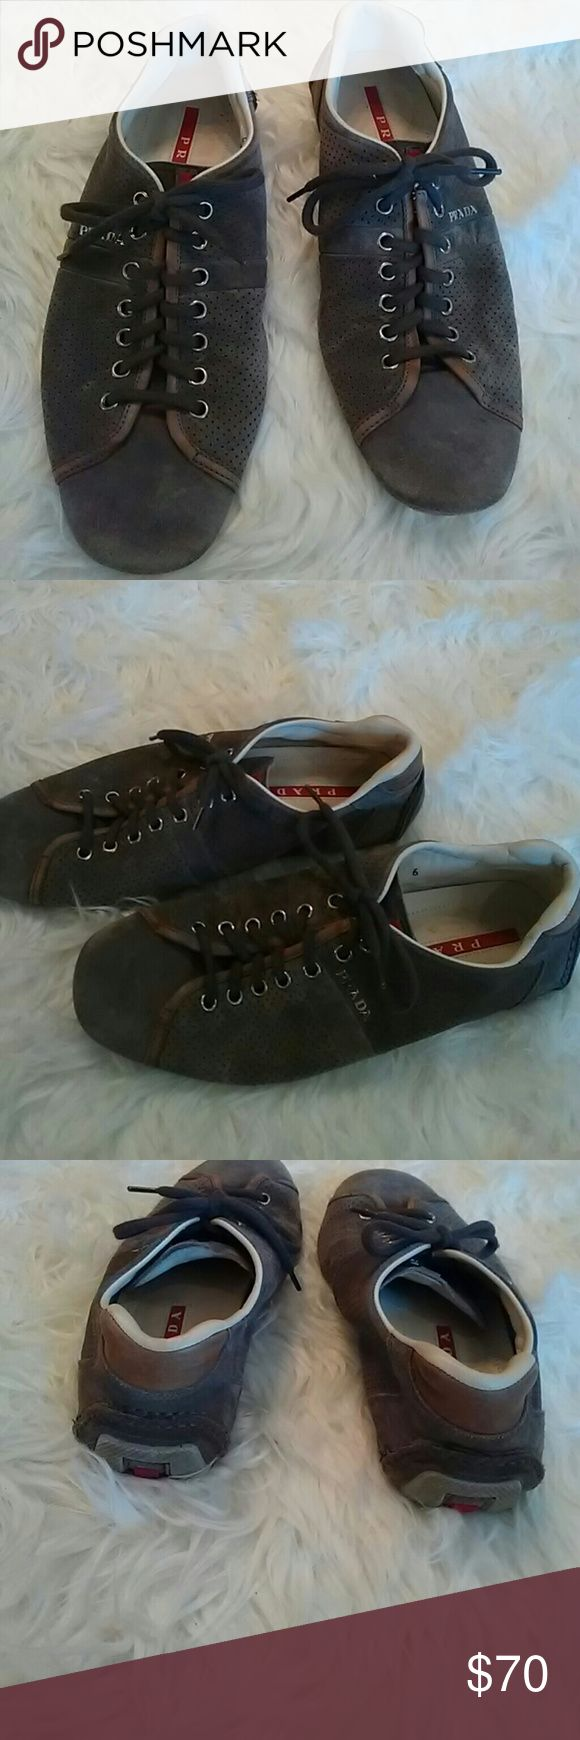 Prada man casual sneakers Taupe suede man casual sneakers in good conditions wear as shown on photos Prada Shoes Sneakers